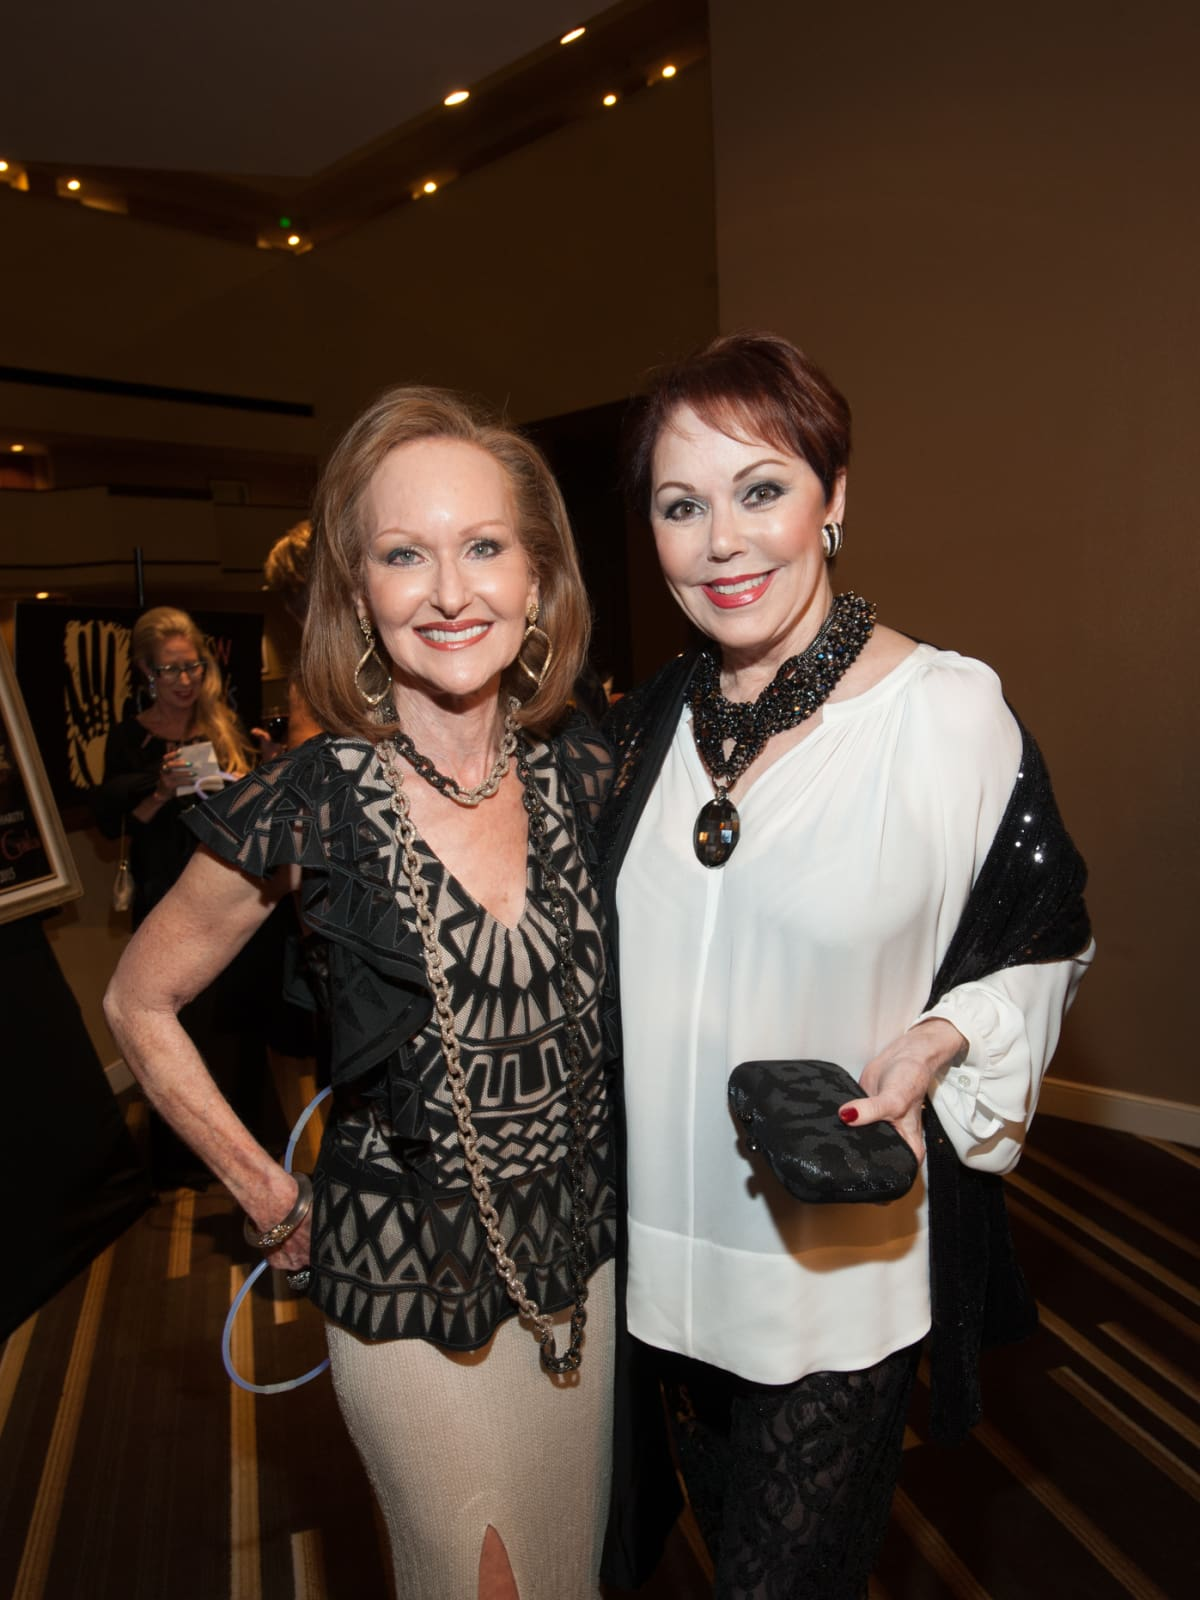 News, Shelby, Houston Children's Charity gala, NOv. 2015, Carol Sawyer, Chris Kase